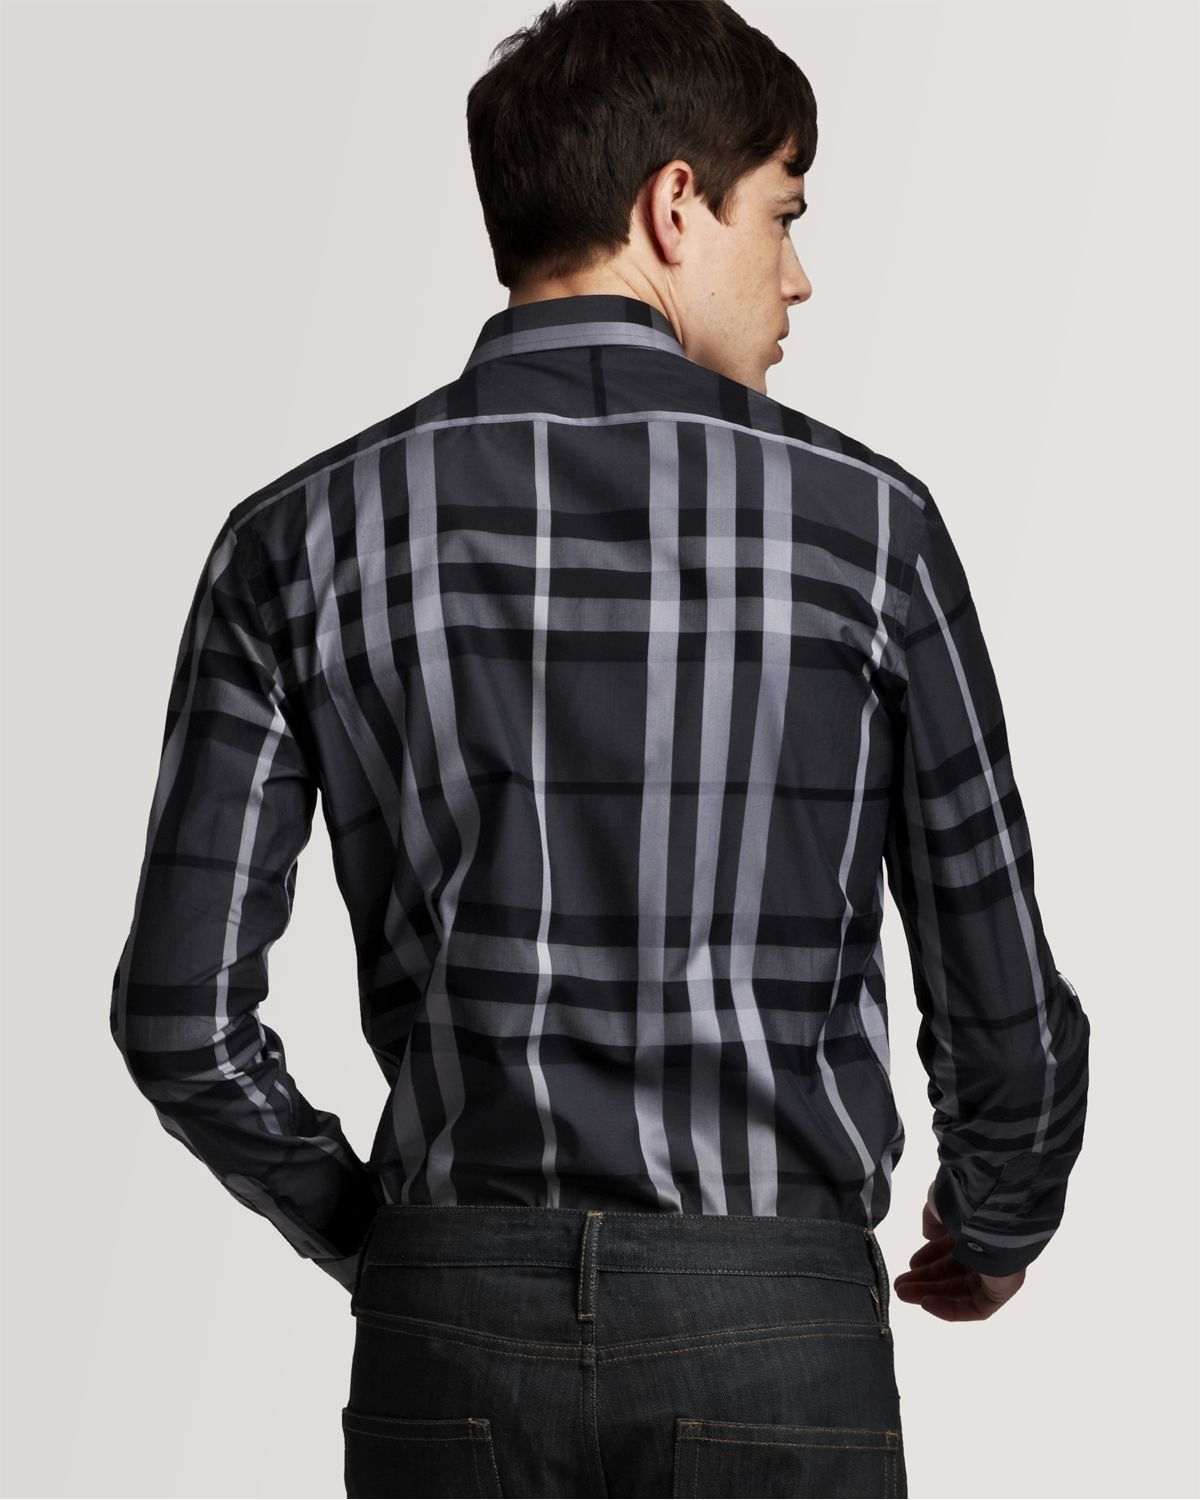 Burberry Dress Shirts Mens T Shirt